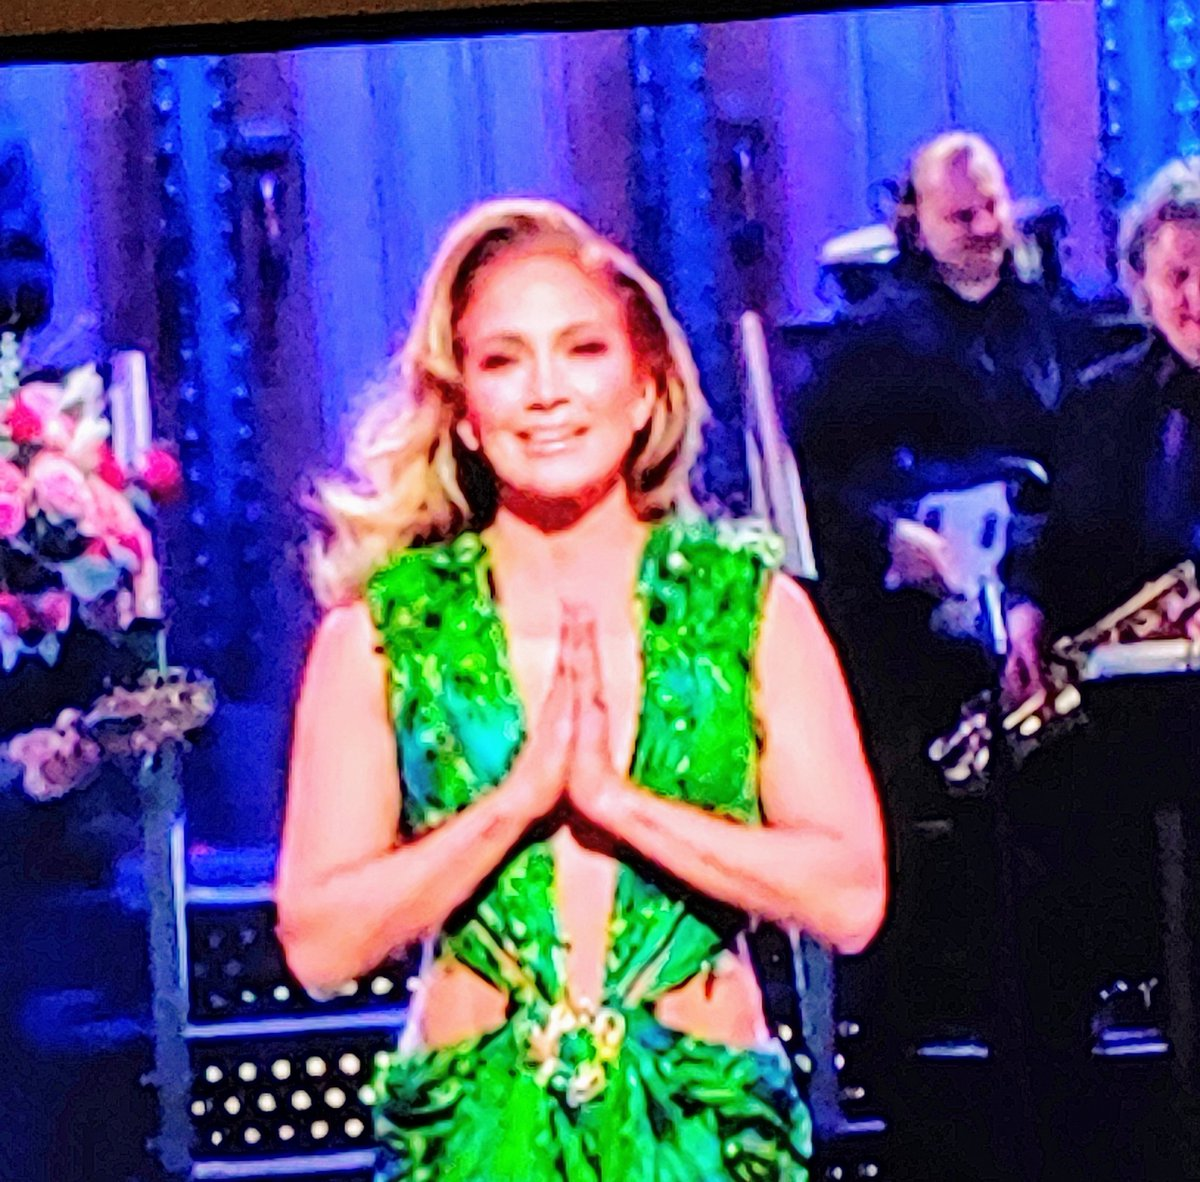 Holy crap, if JLo can look this good at 50, maybe 35 won't be too bad! #SNL #Hulu #JLo